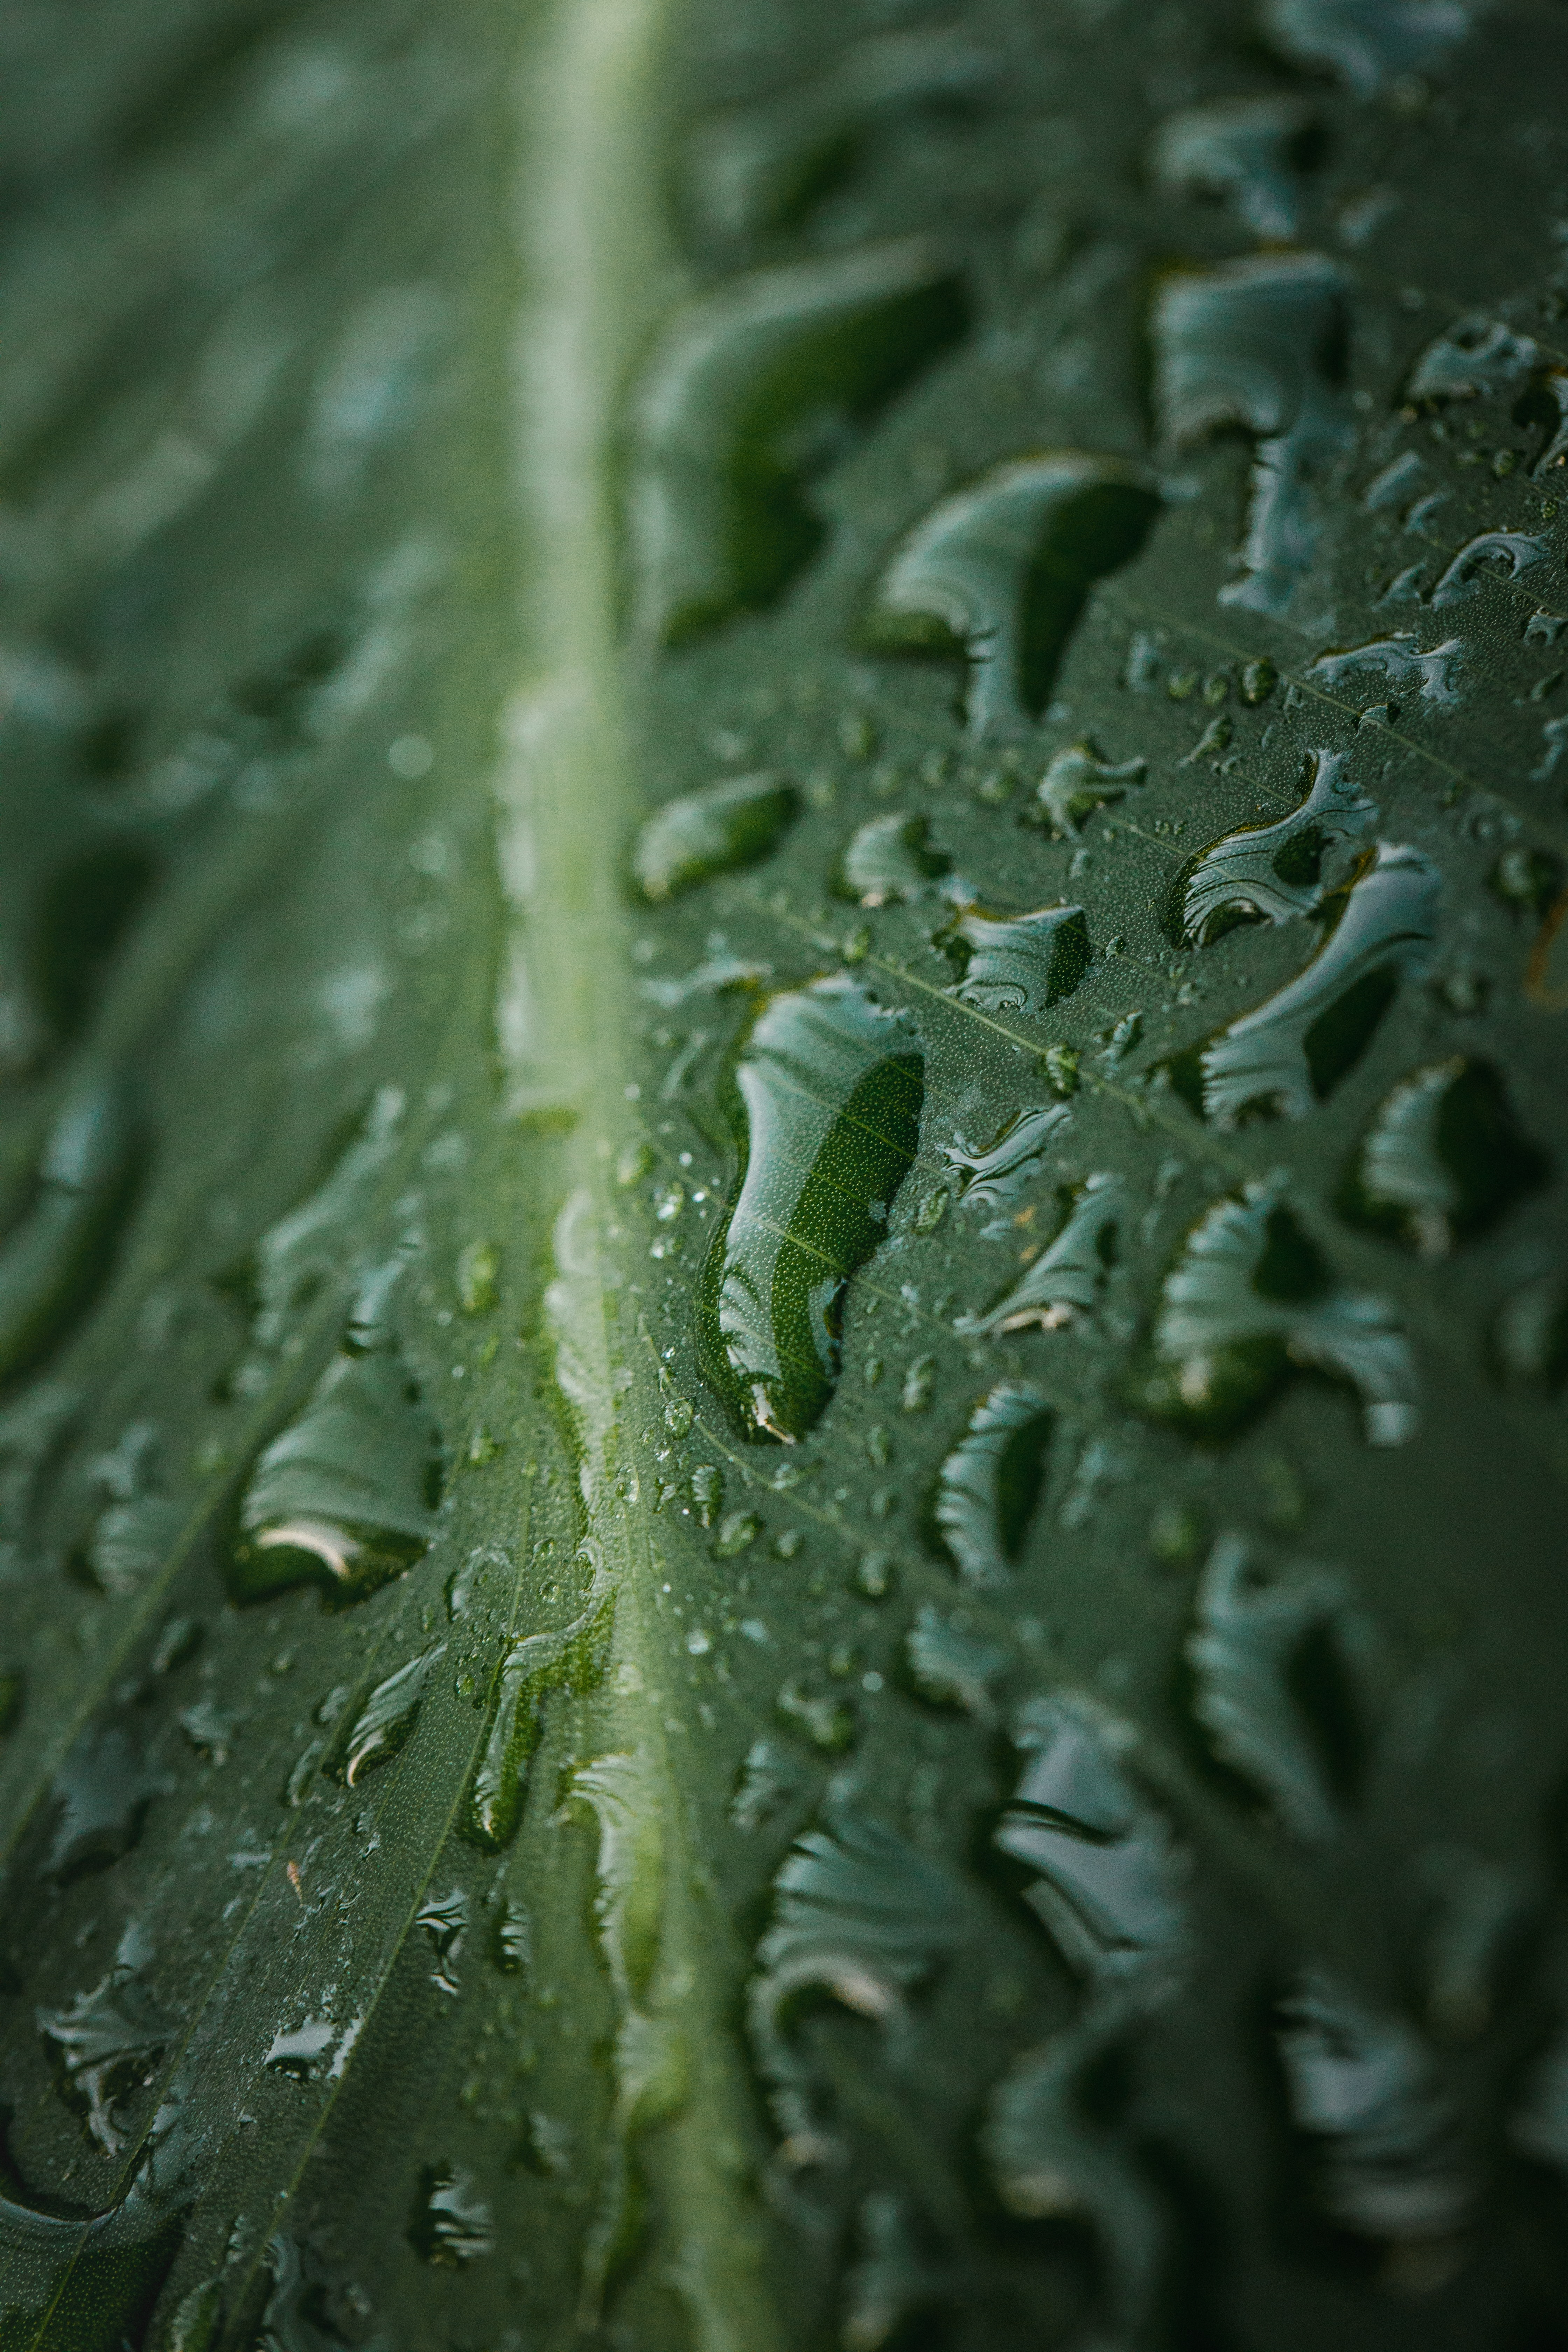 143581 download wallpaper Macro, Sheet, Leaf, Drops, Wet, Water screensavers and pictures for free